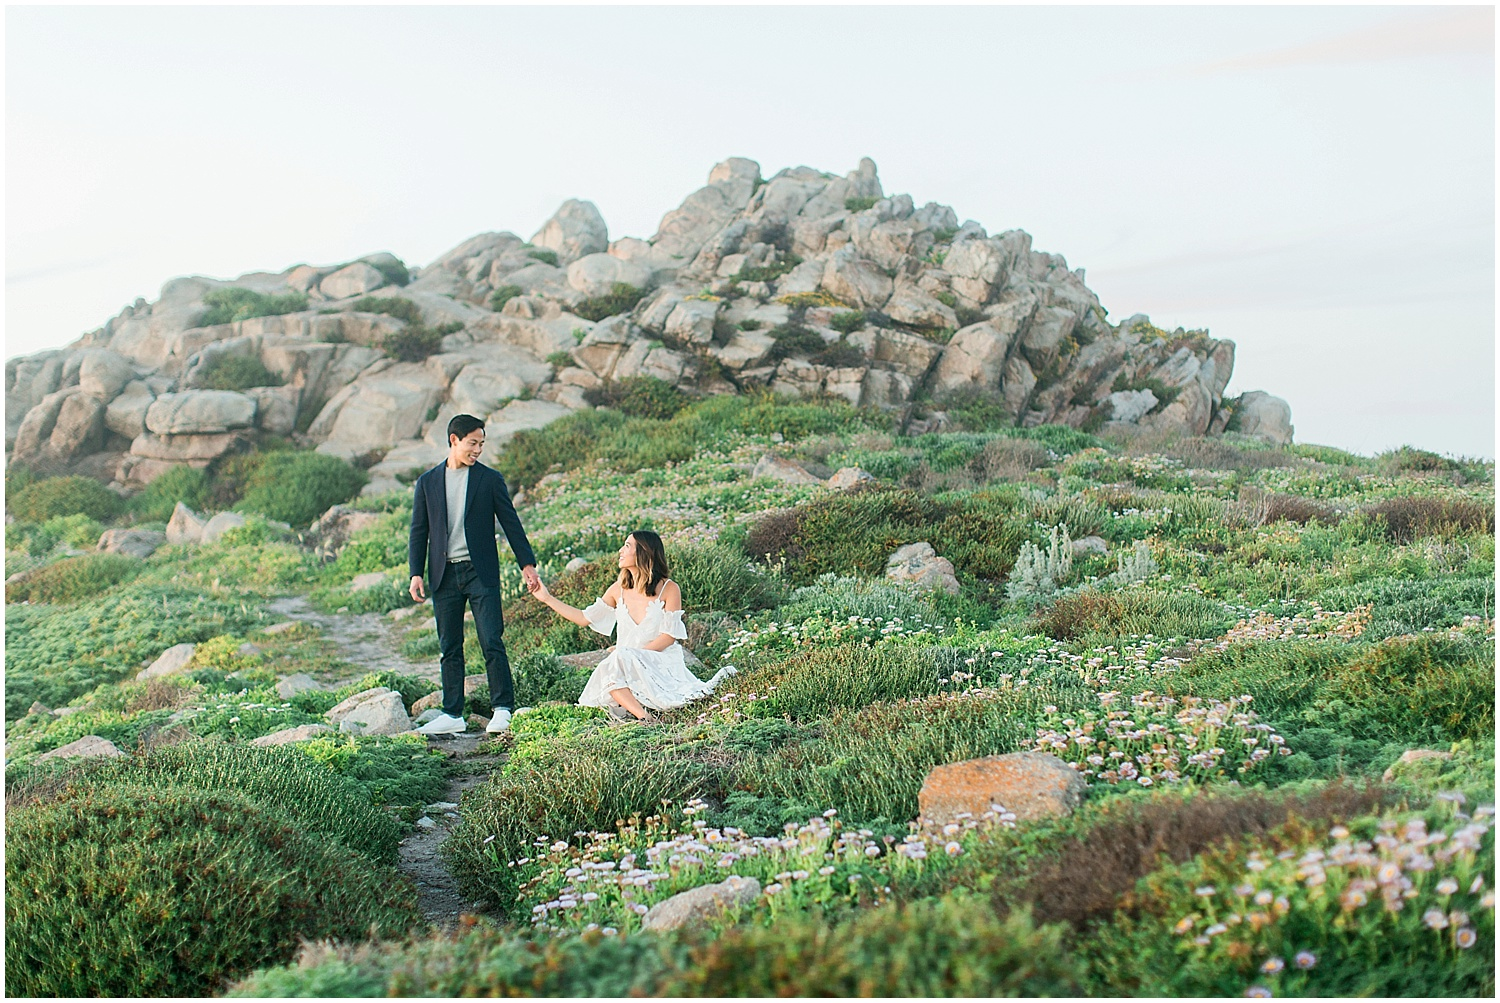 carmel_by_the_sea_17_mile_drive_engagement_session-020.jpg